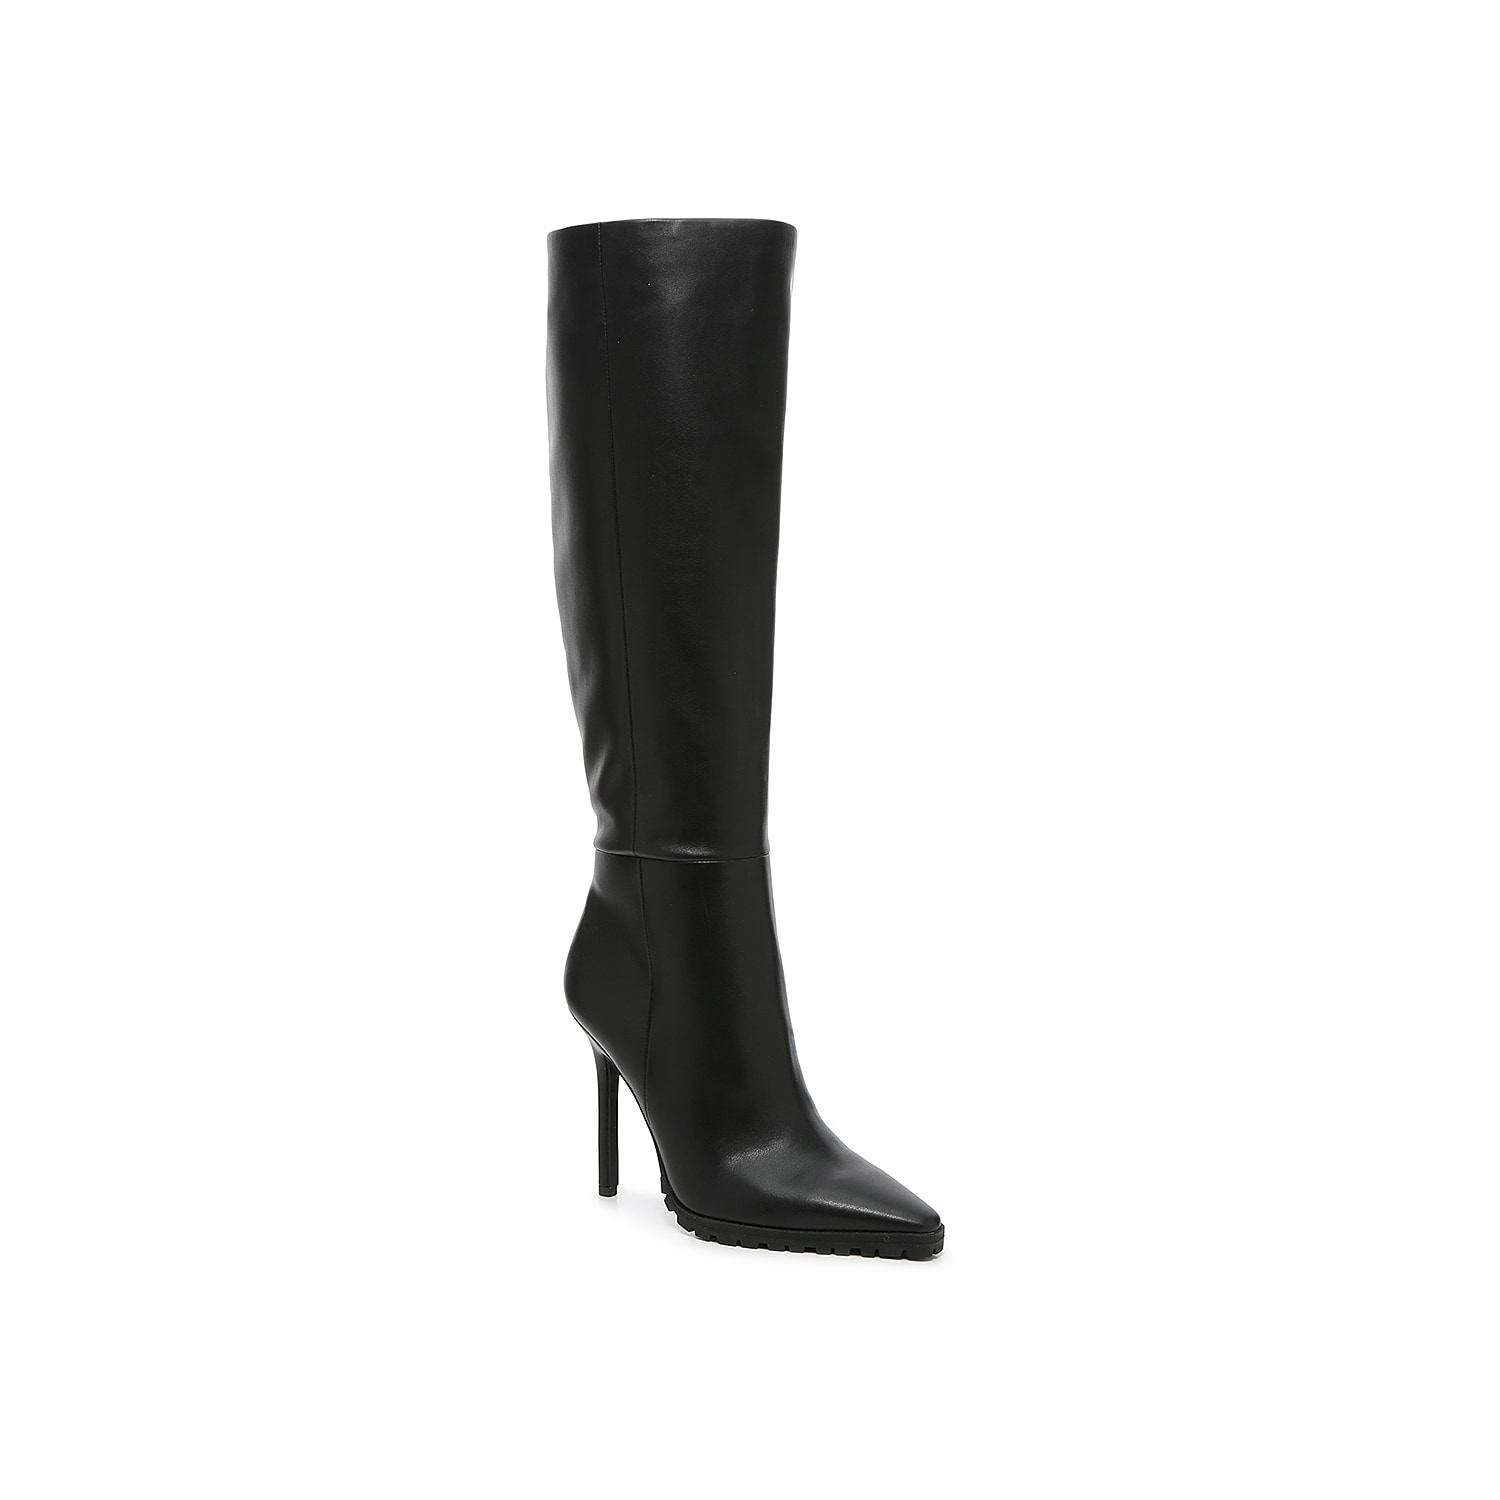 Elegant with minimal accents for endless matching, the Jarrell boots from JLO Jennifer Lopez conform to the shape of your leg for an ultra-fitted silhouette. A lugged outsole adds anti-slip traction to your fast-paced steps. Click here for Boot Measuring Guide.